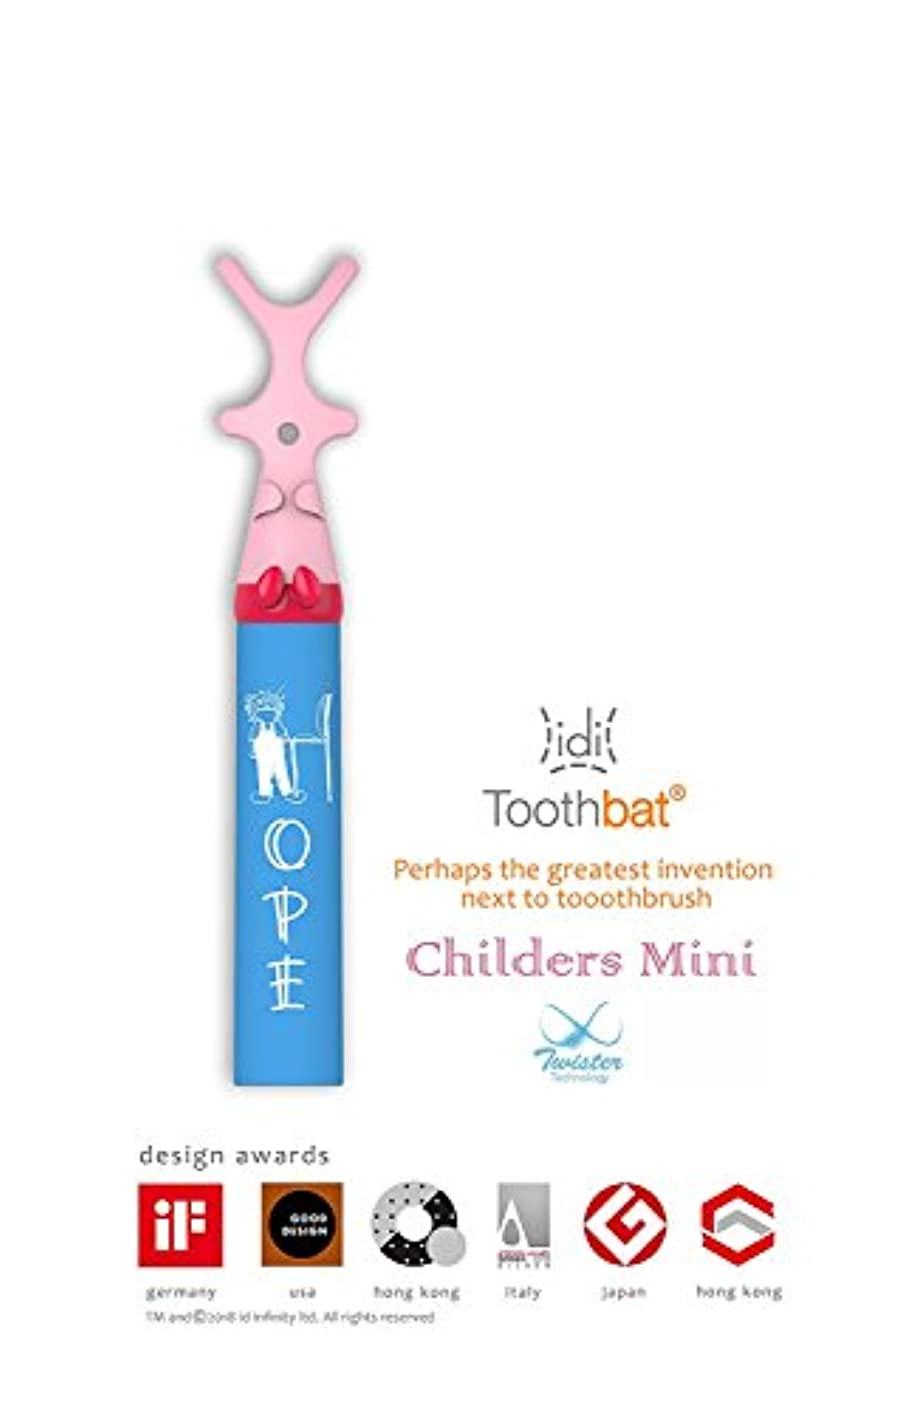 toothbat WOW Kids Dental floss holder for perfect oral hygiene and tooth cleaning of interdental spaces. The professional dental care